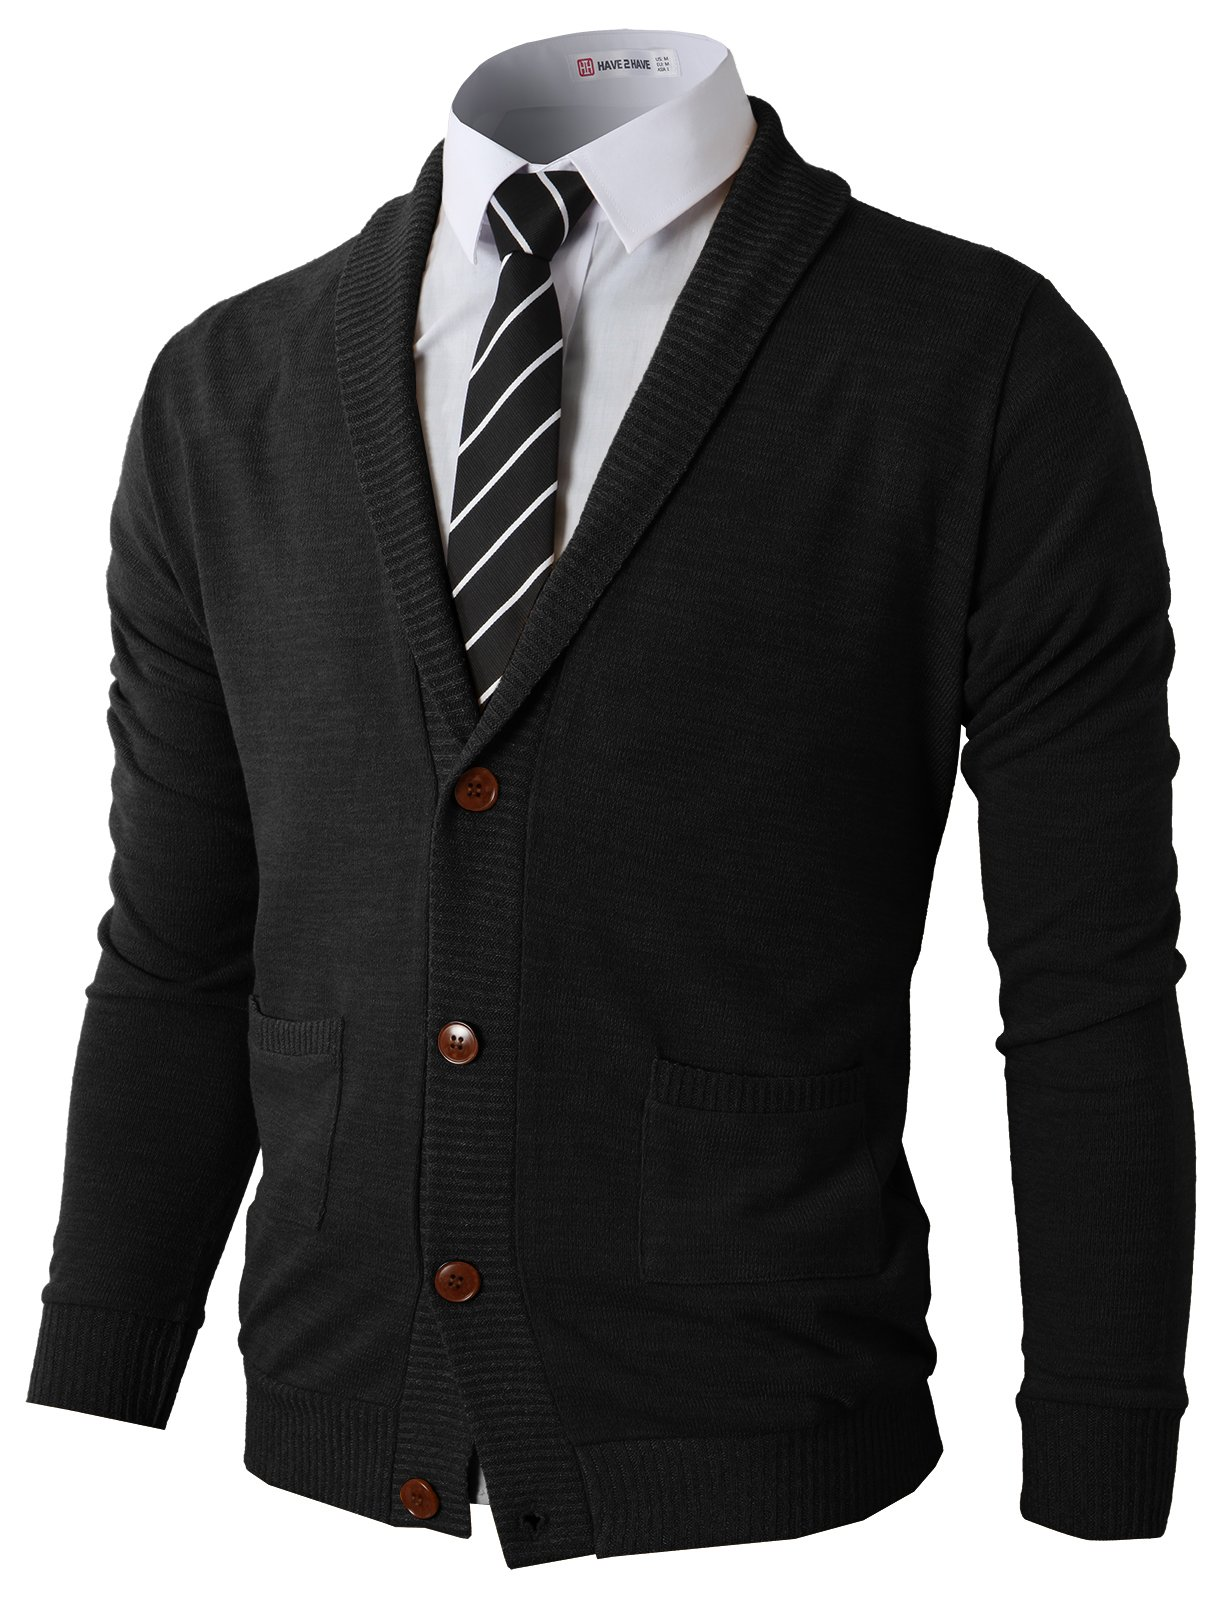 H2H Mens Slim Fit V-Neck Button Up Cardigan Sweater Black US 2XL/Asia 3XL (CMOCAL07) by H2H